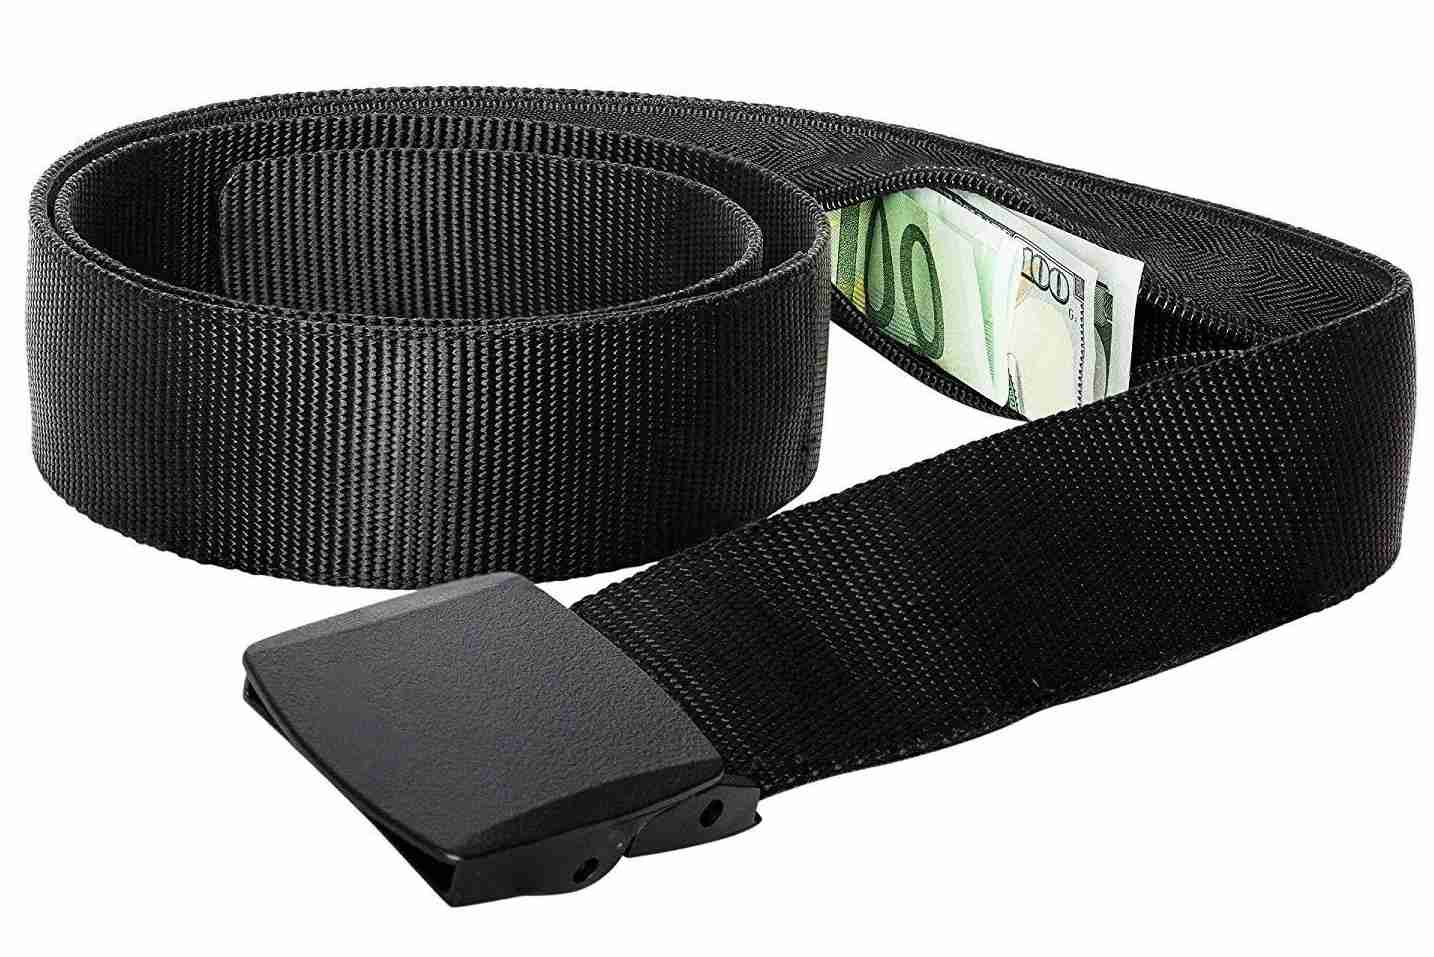 That little zipper pouch is the safest spot for your big bills. Image courtesy of Amazon.